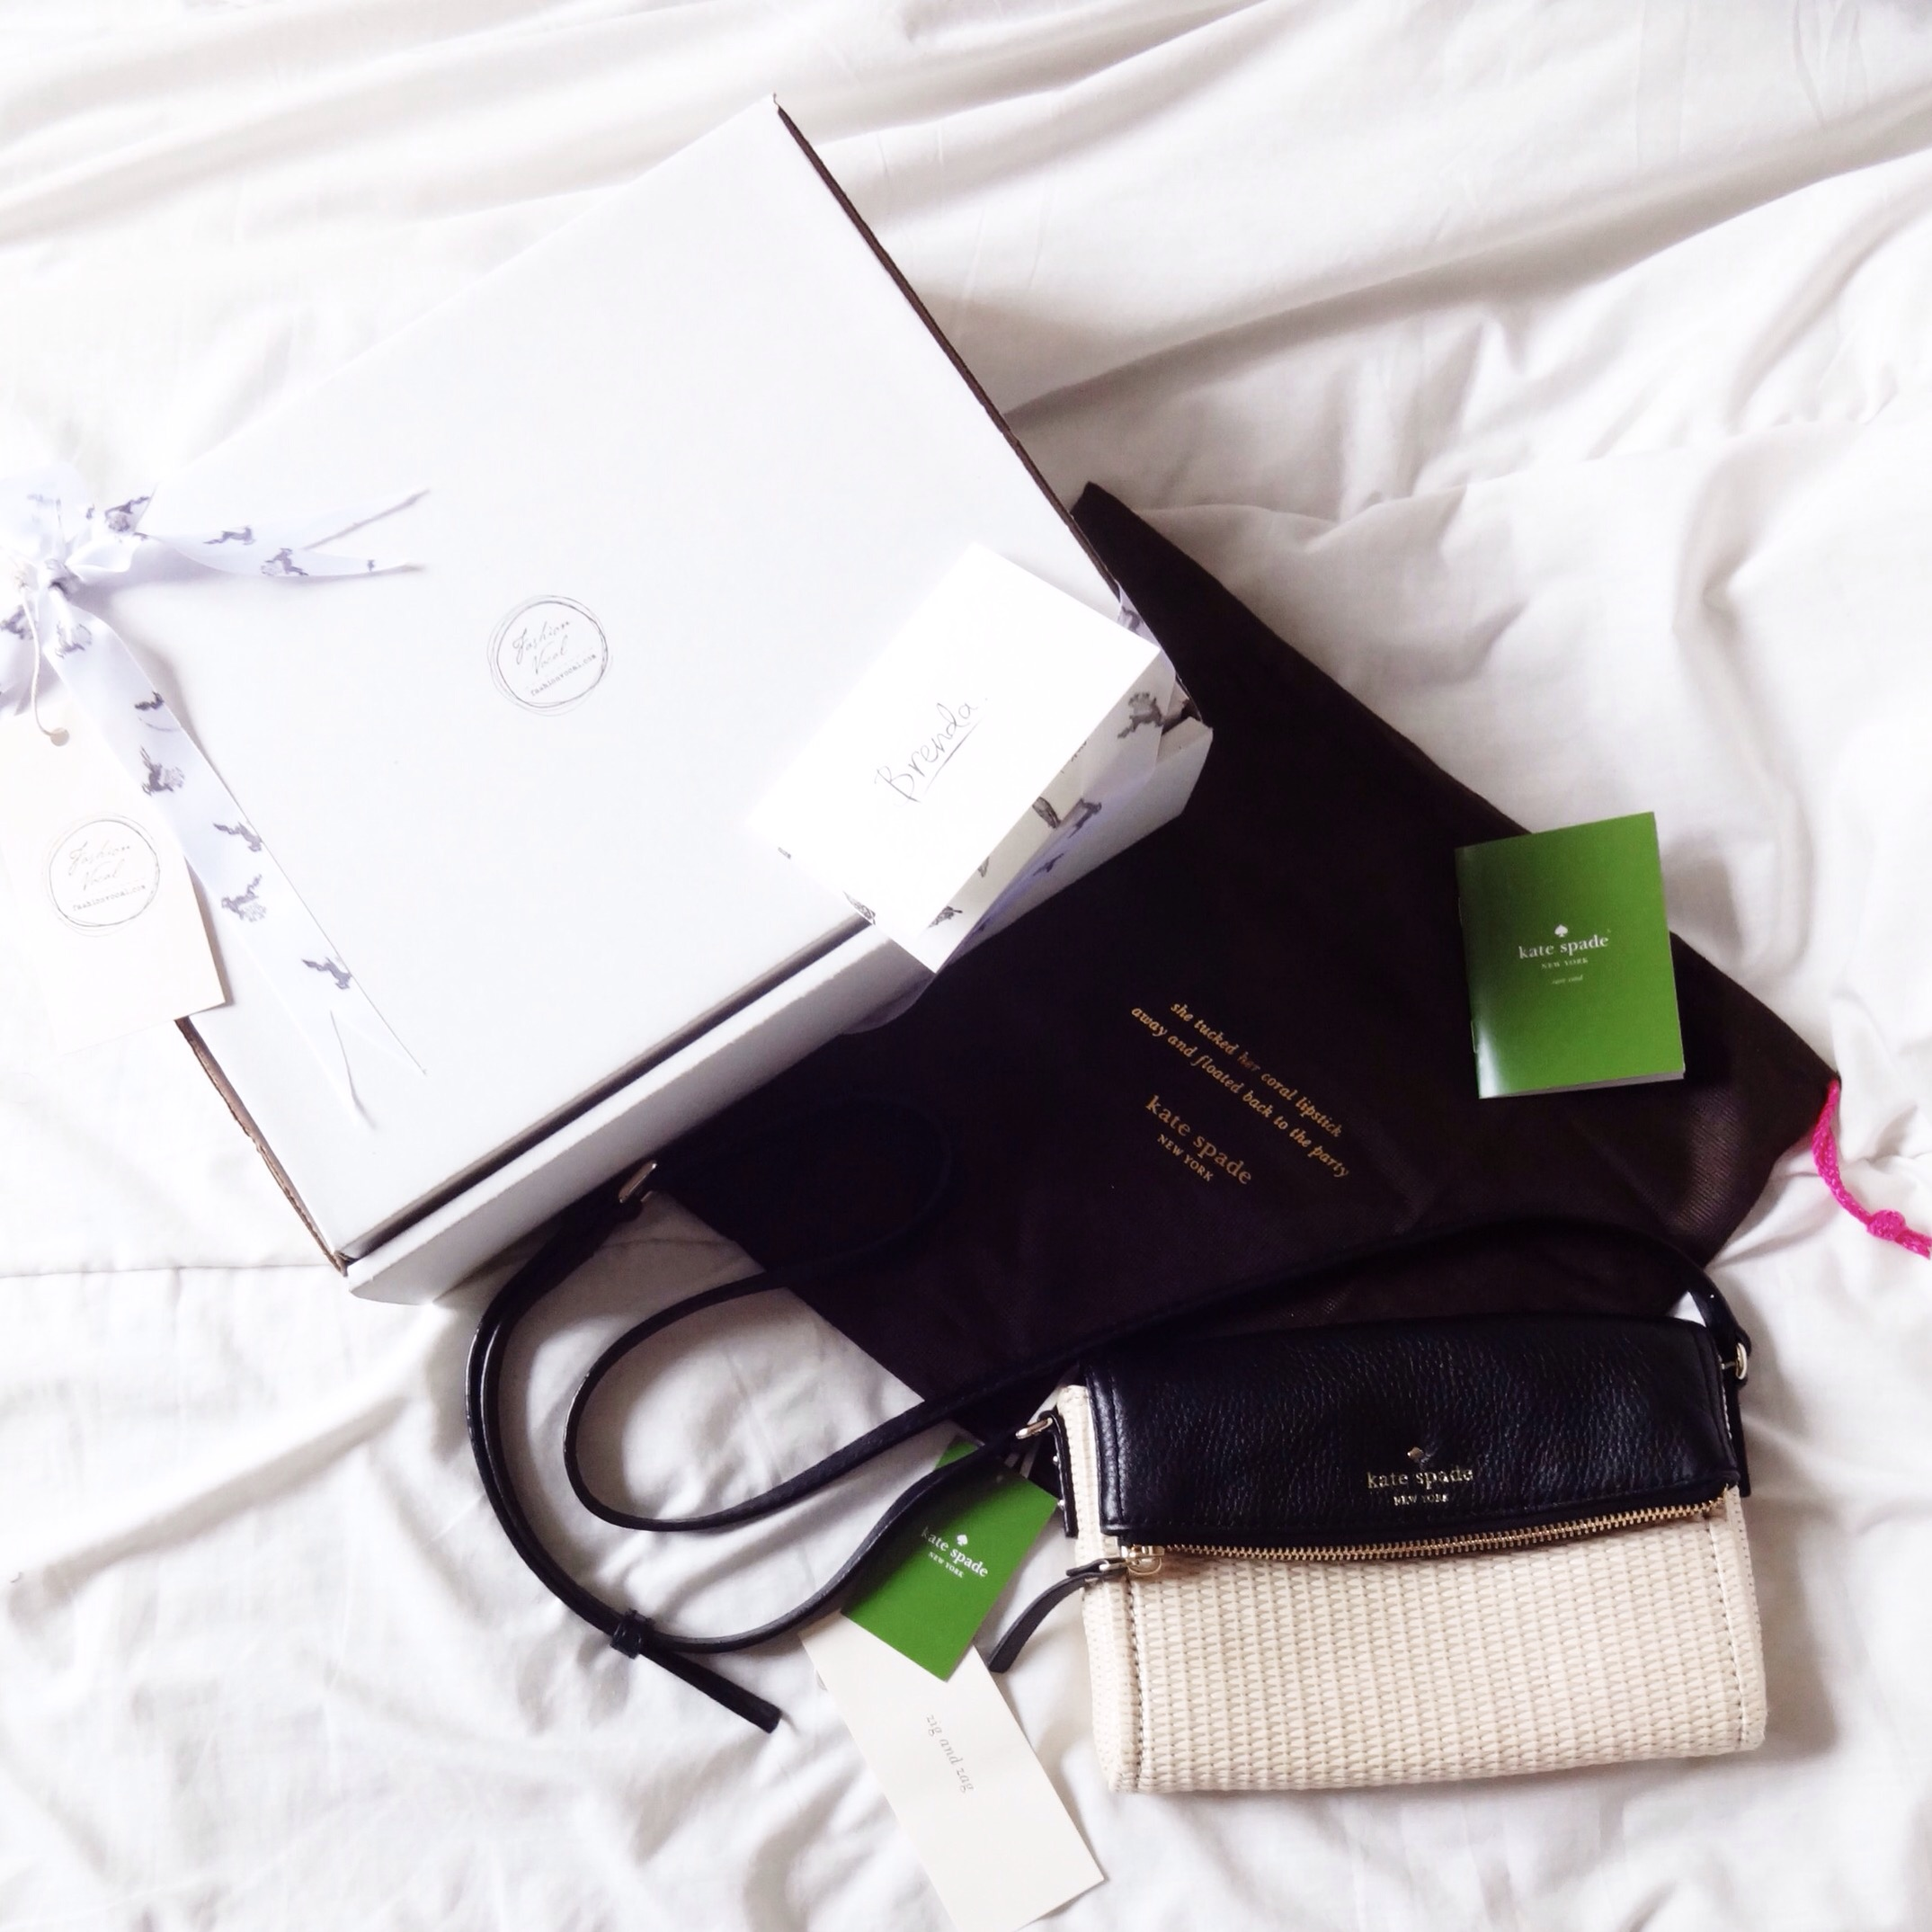 Fashion Vocal : Neat packaging furnished with ribbons and a handwritten card